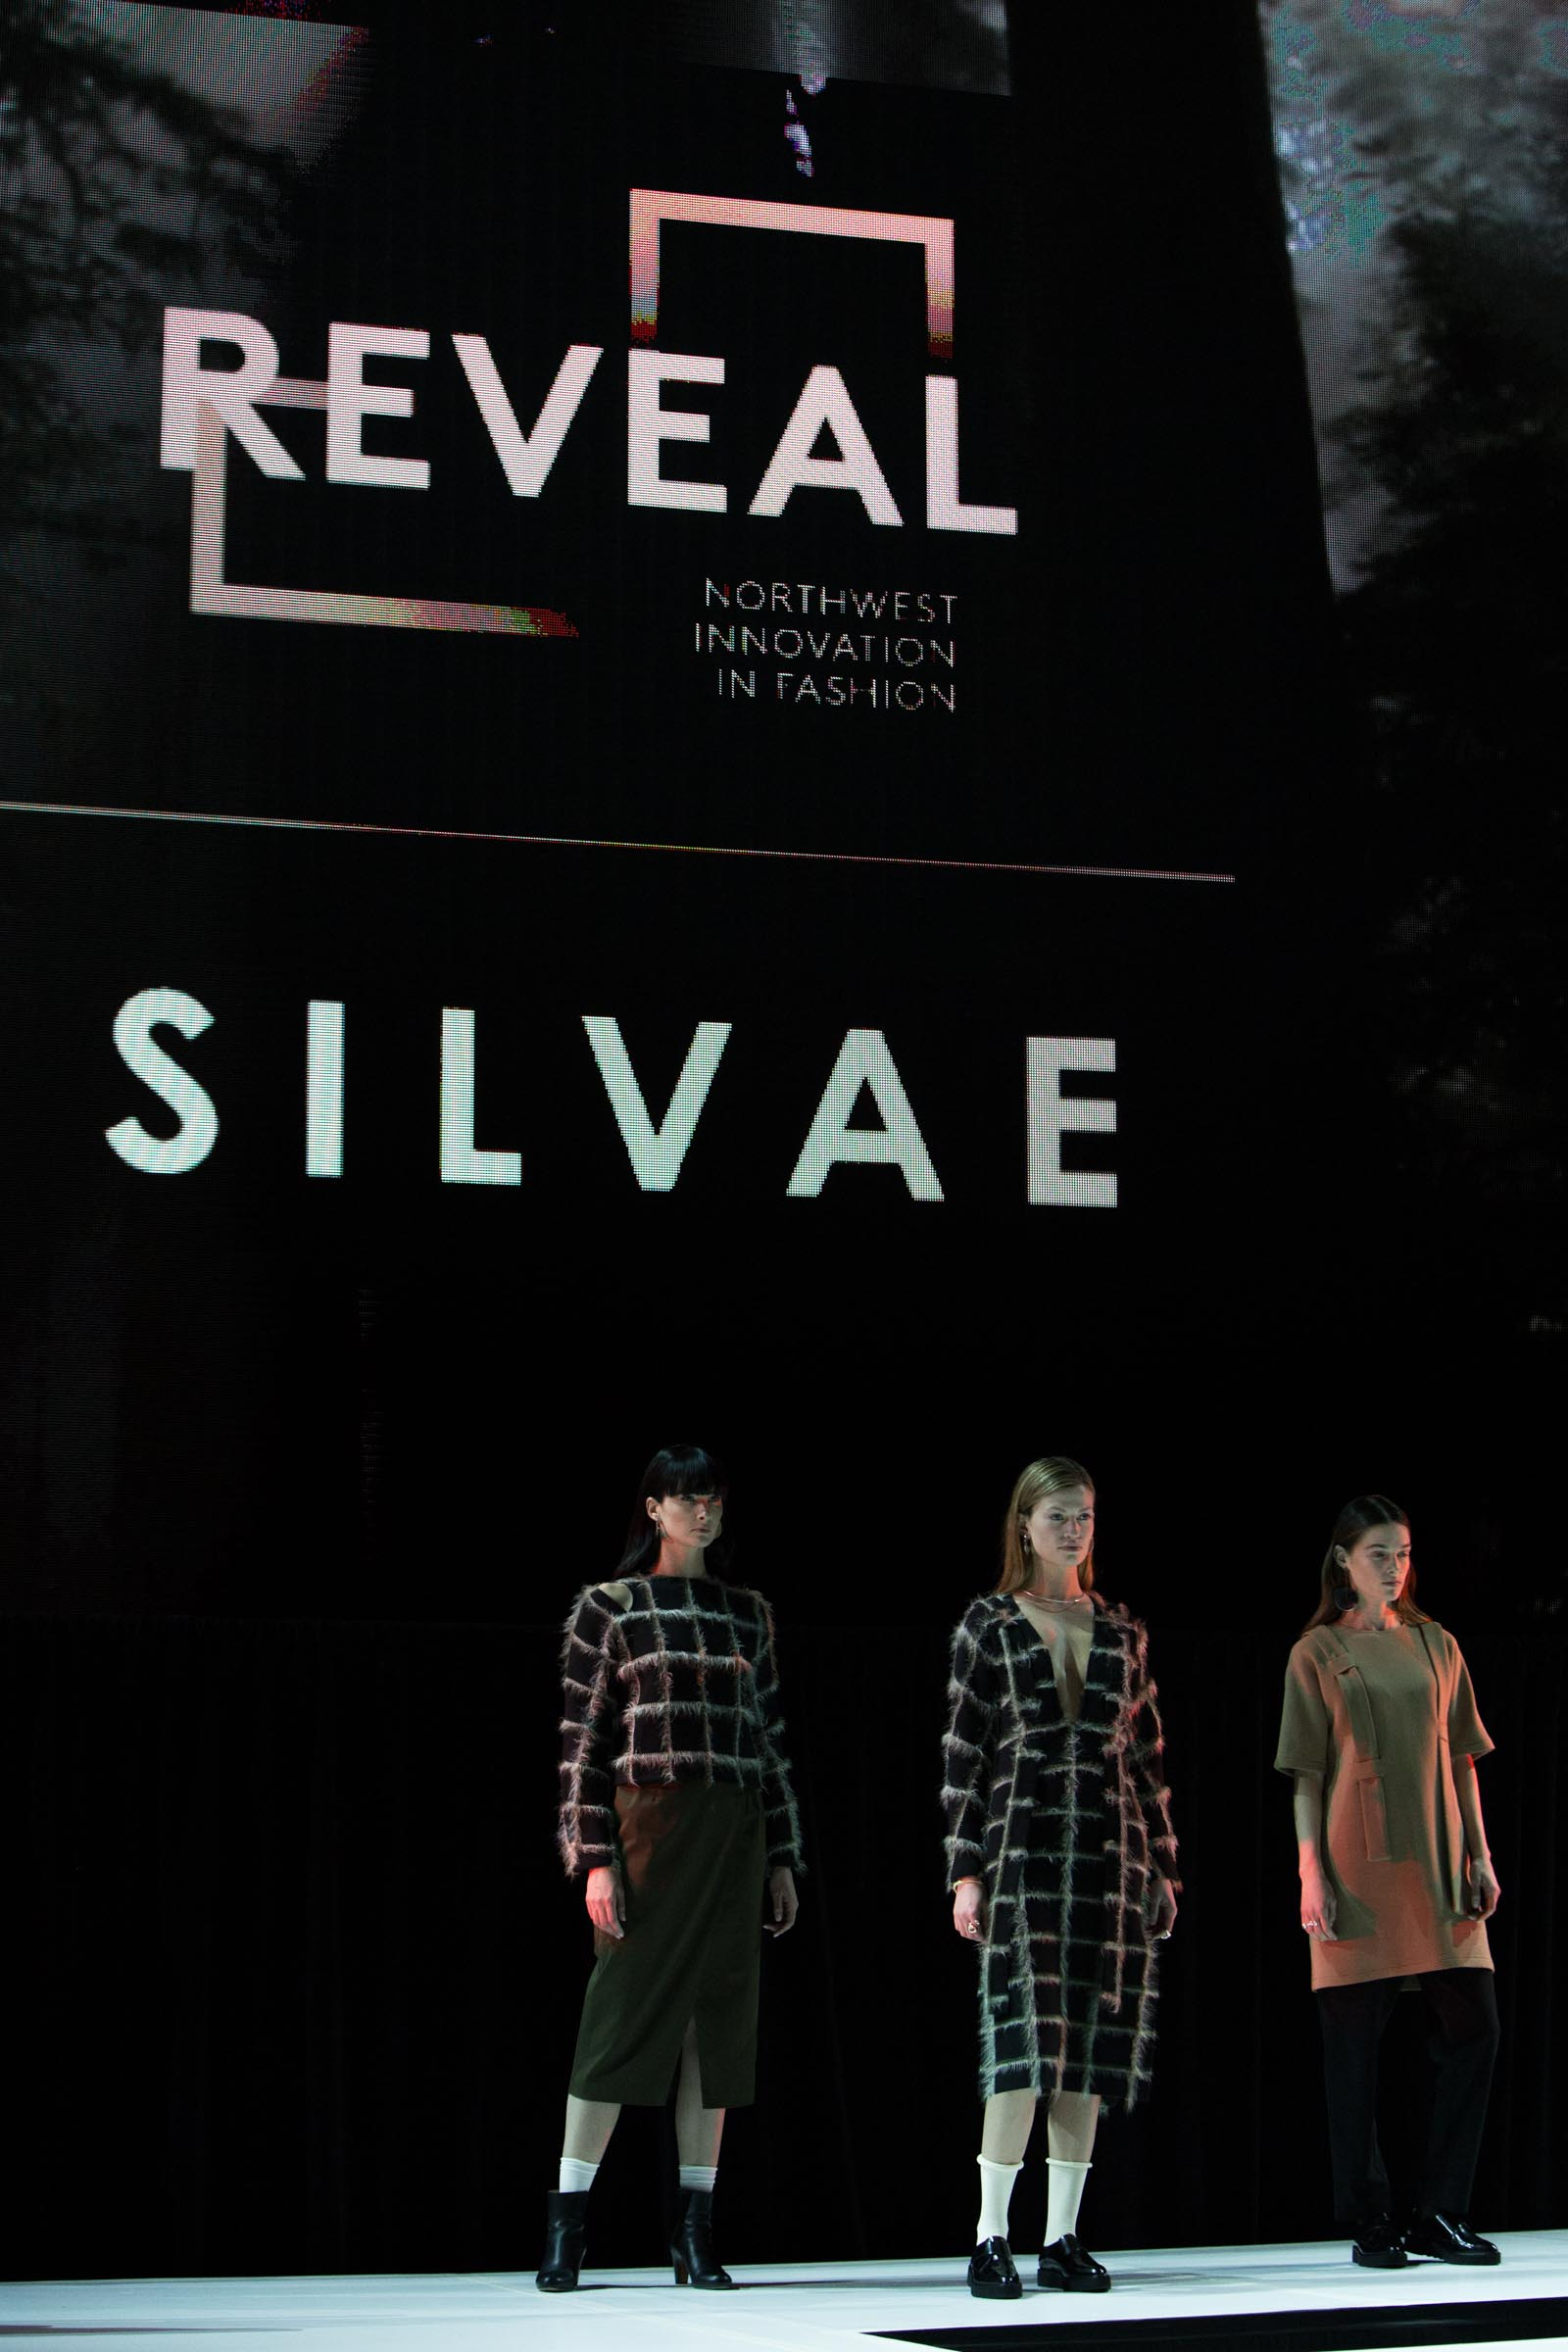 Reveal: Innovation in Northwest Fashion